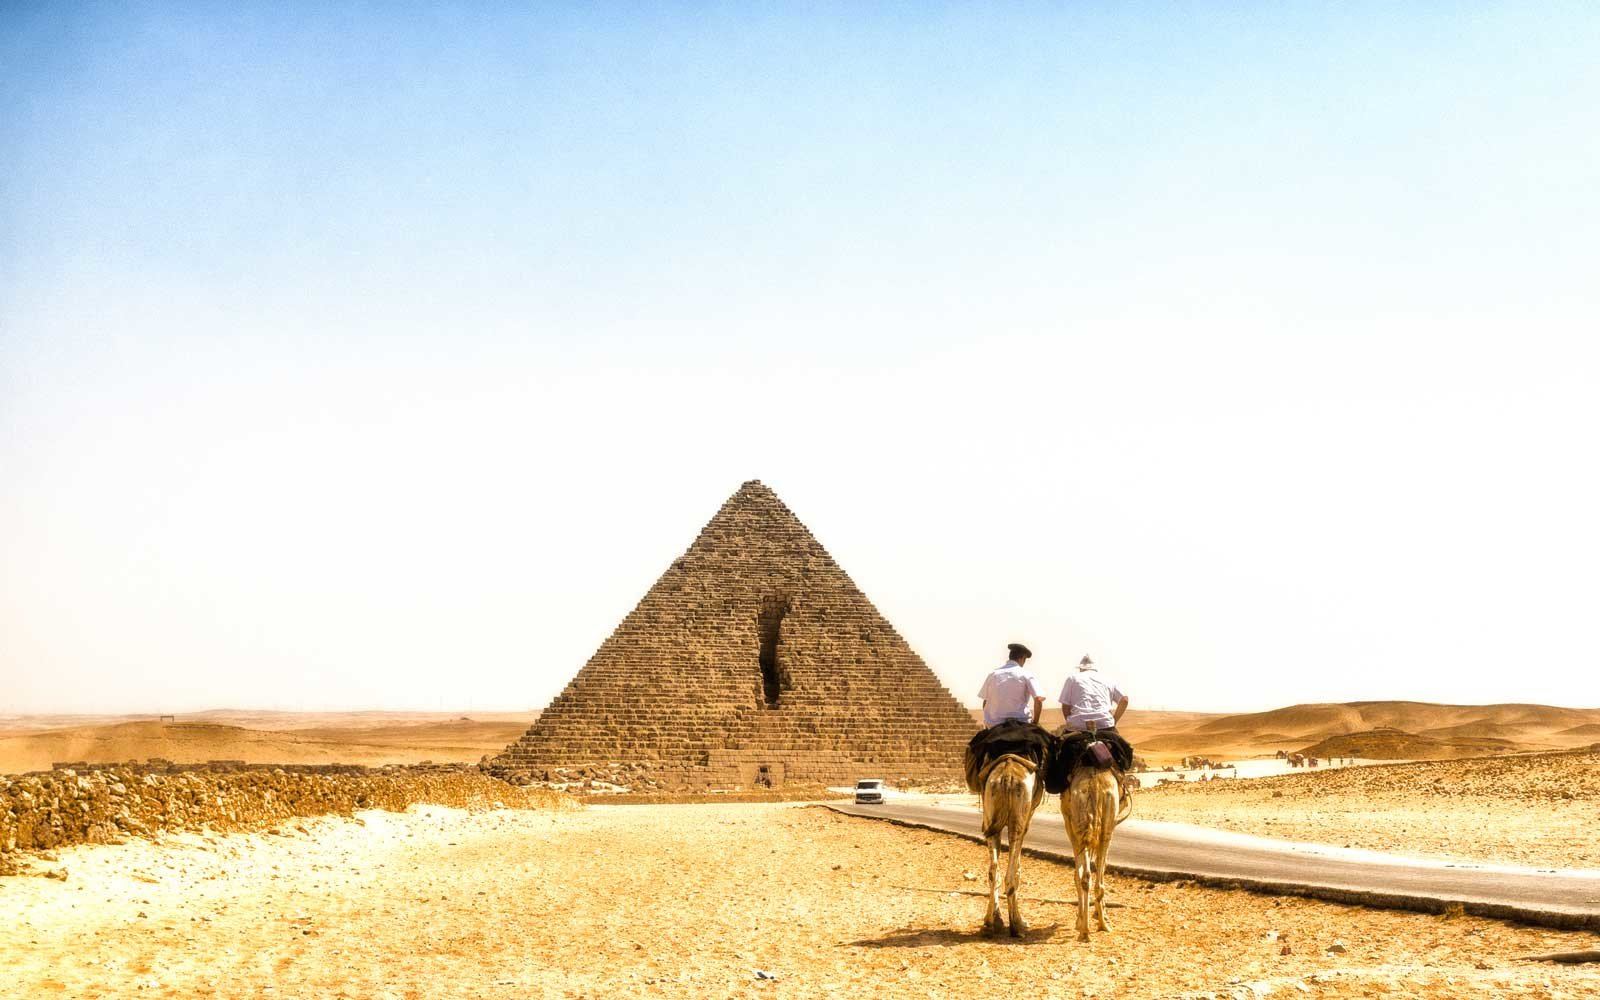 Two policemen on camels in front of the Pyramids in Giza, Egypt